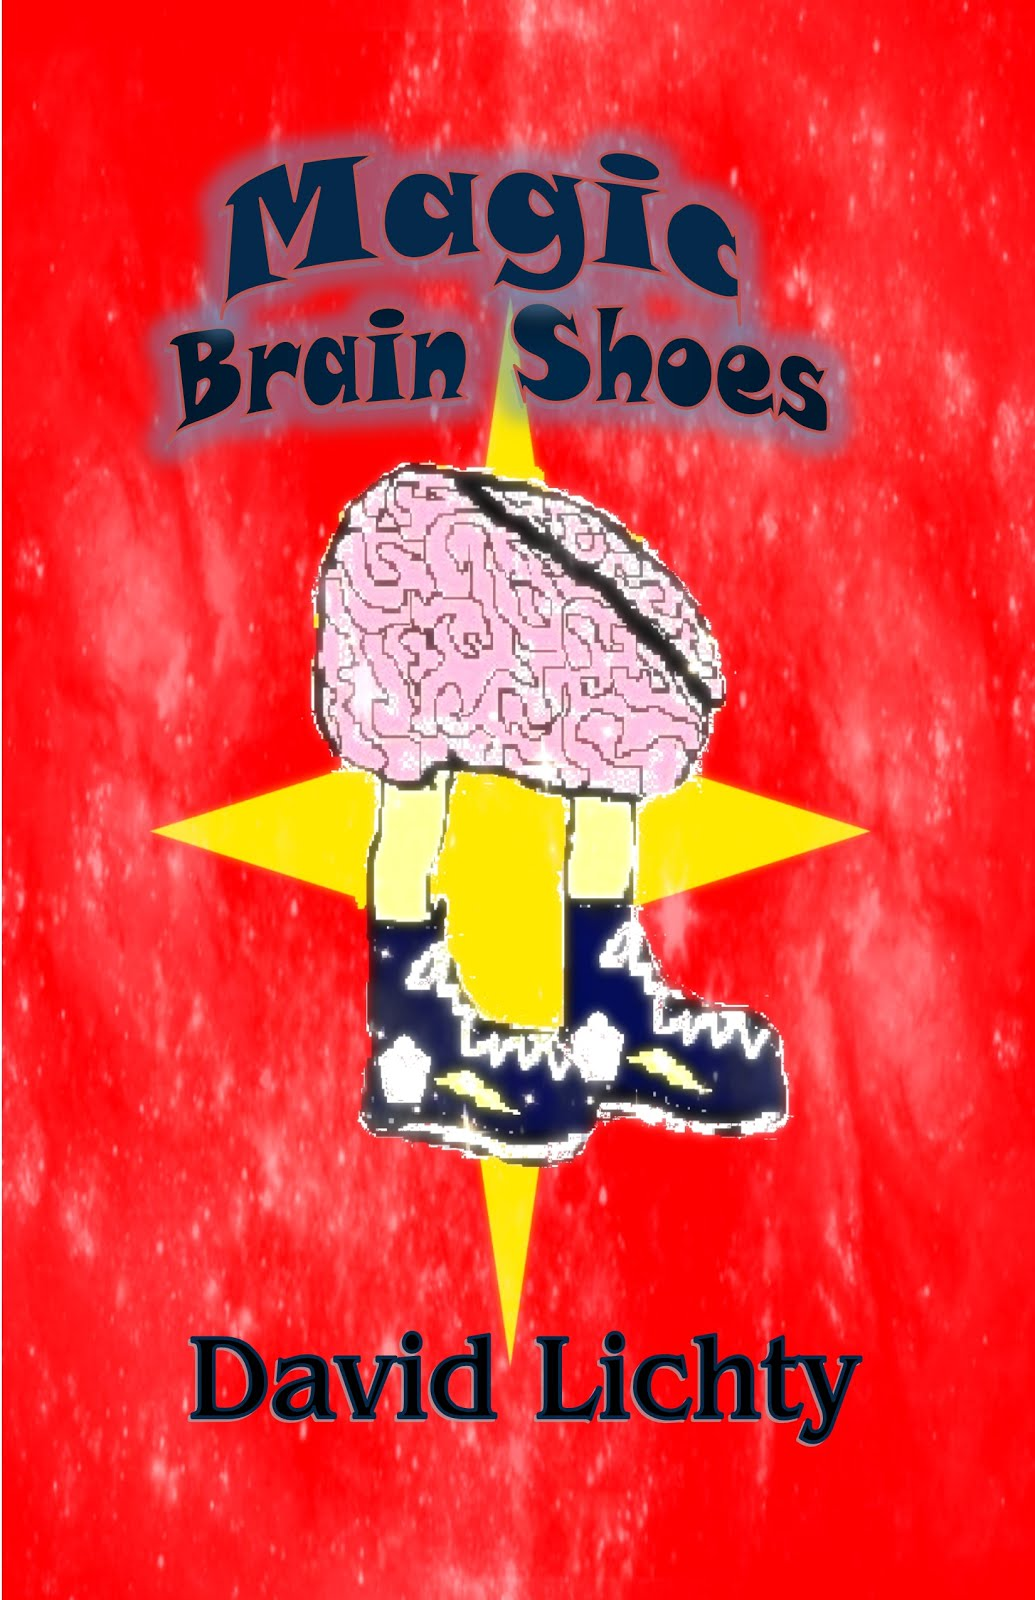 Magic Brain Shoes